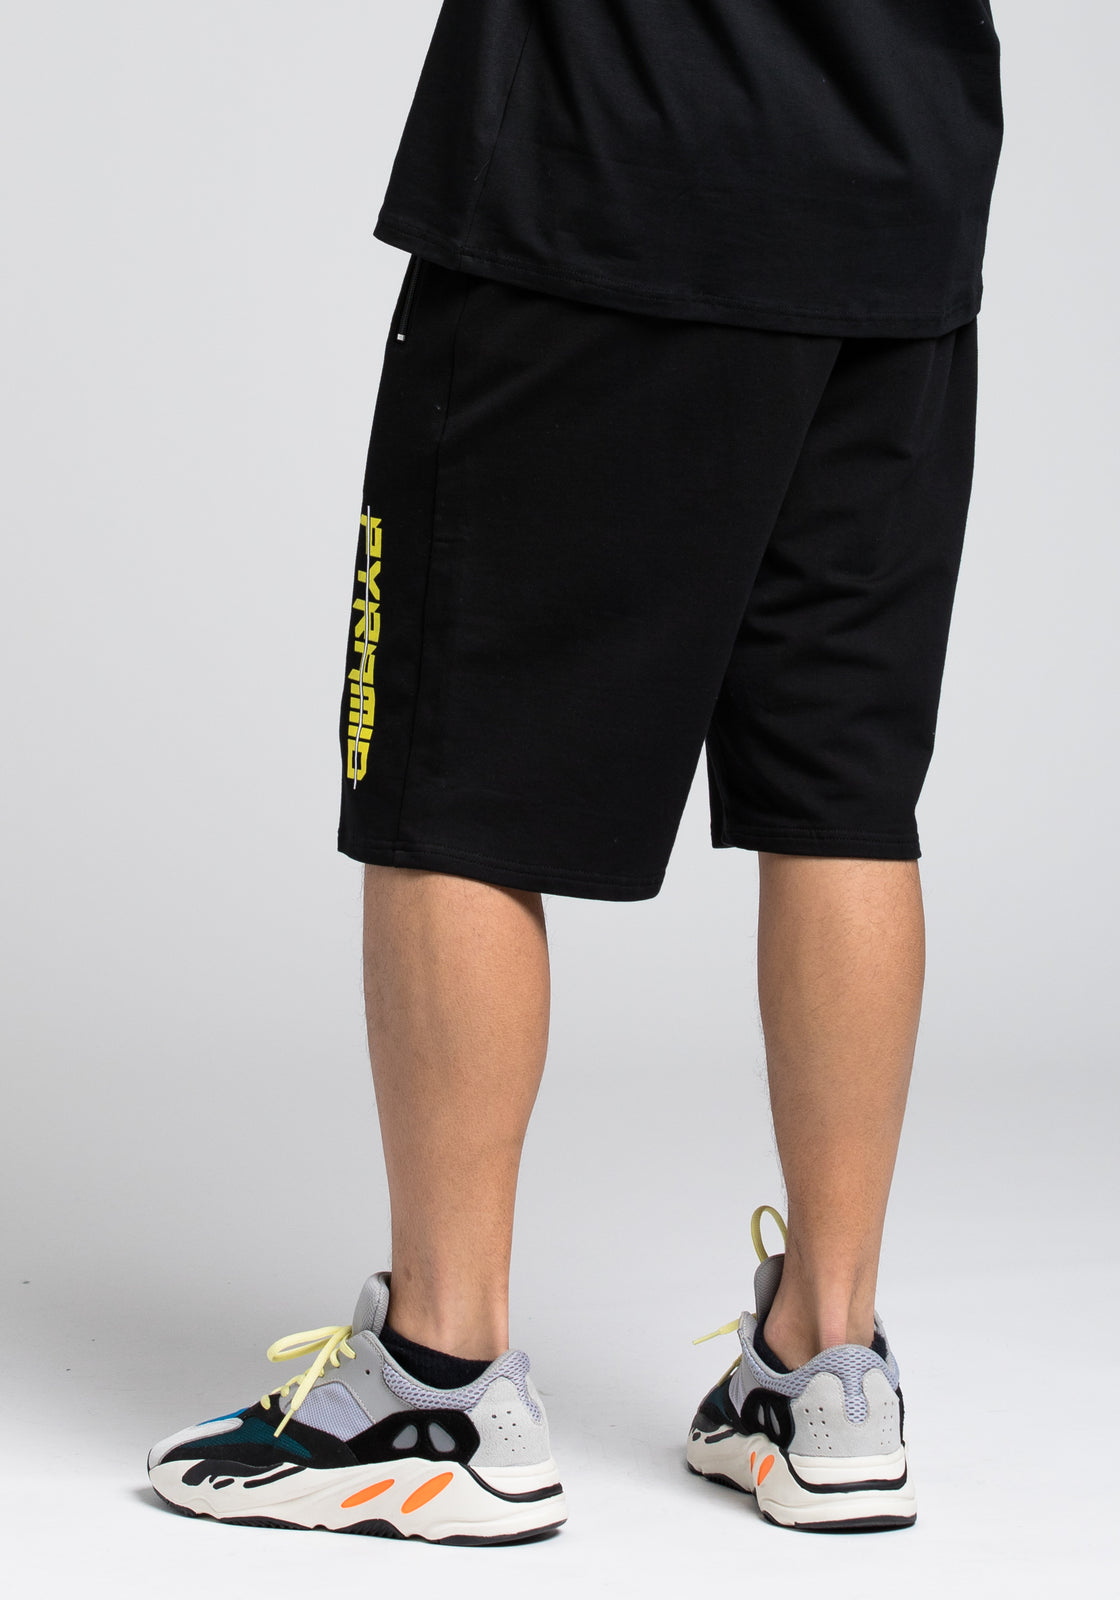 Pyramid Expedition Short - Color: Black